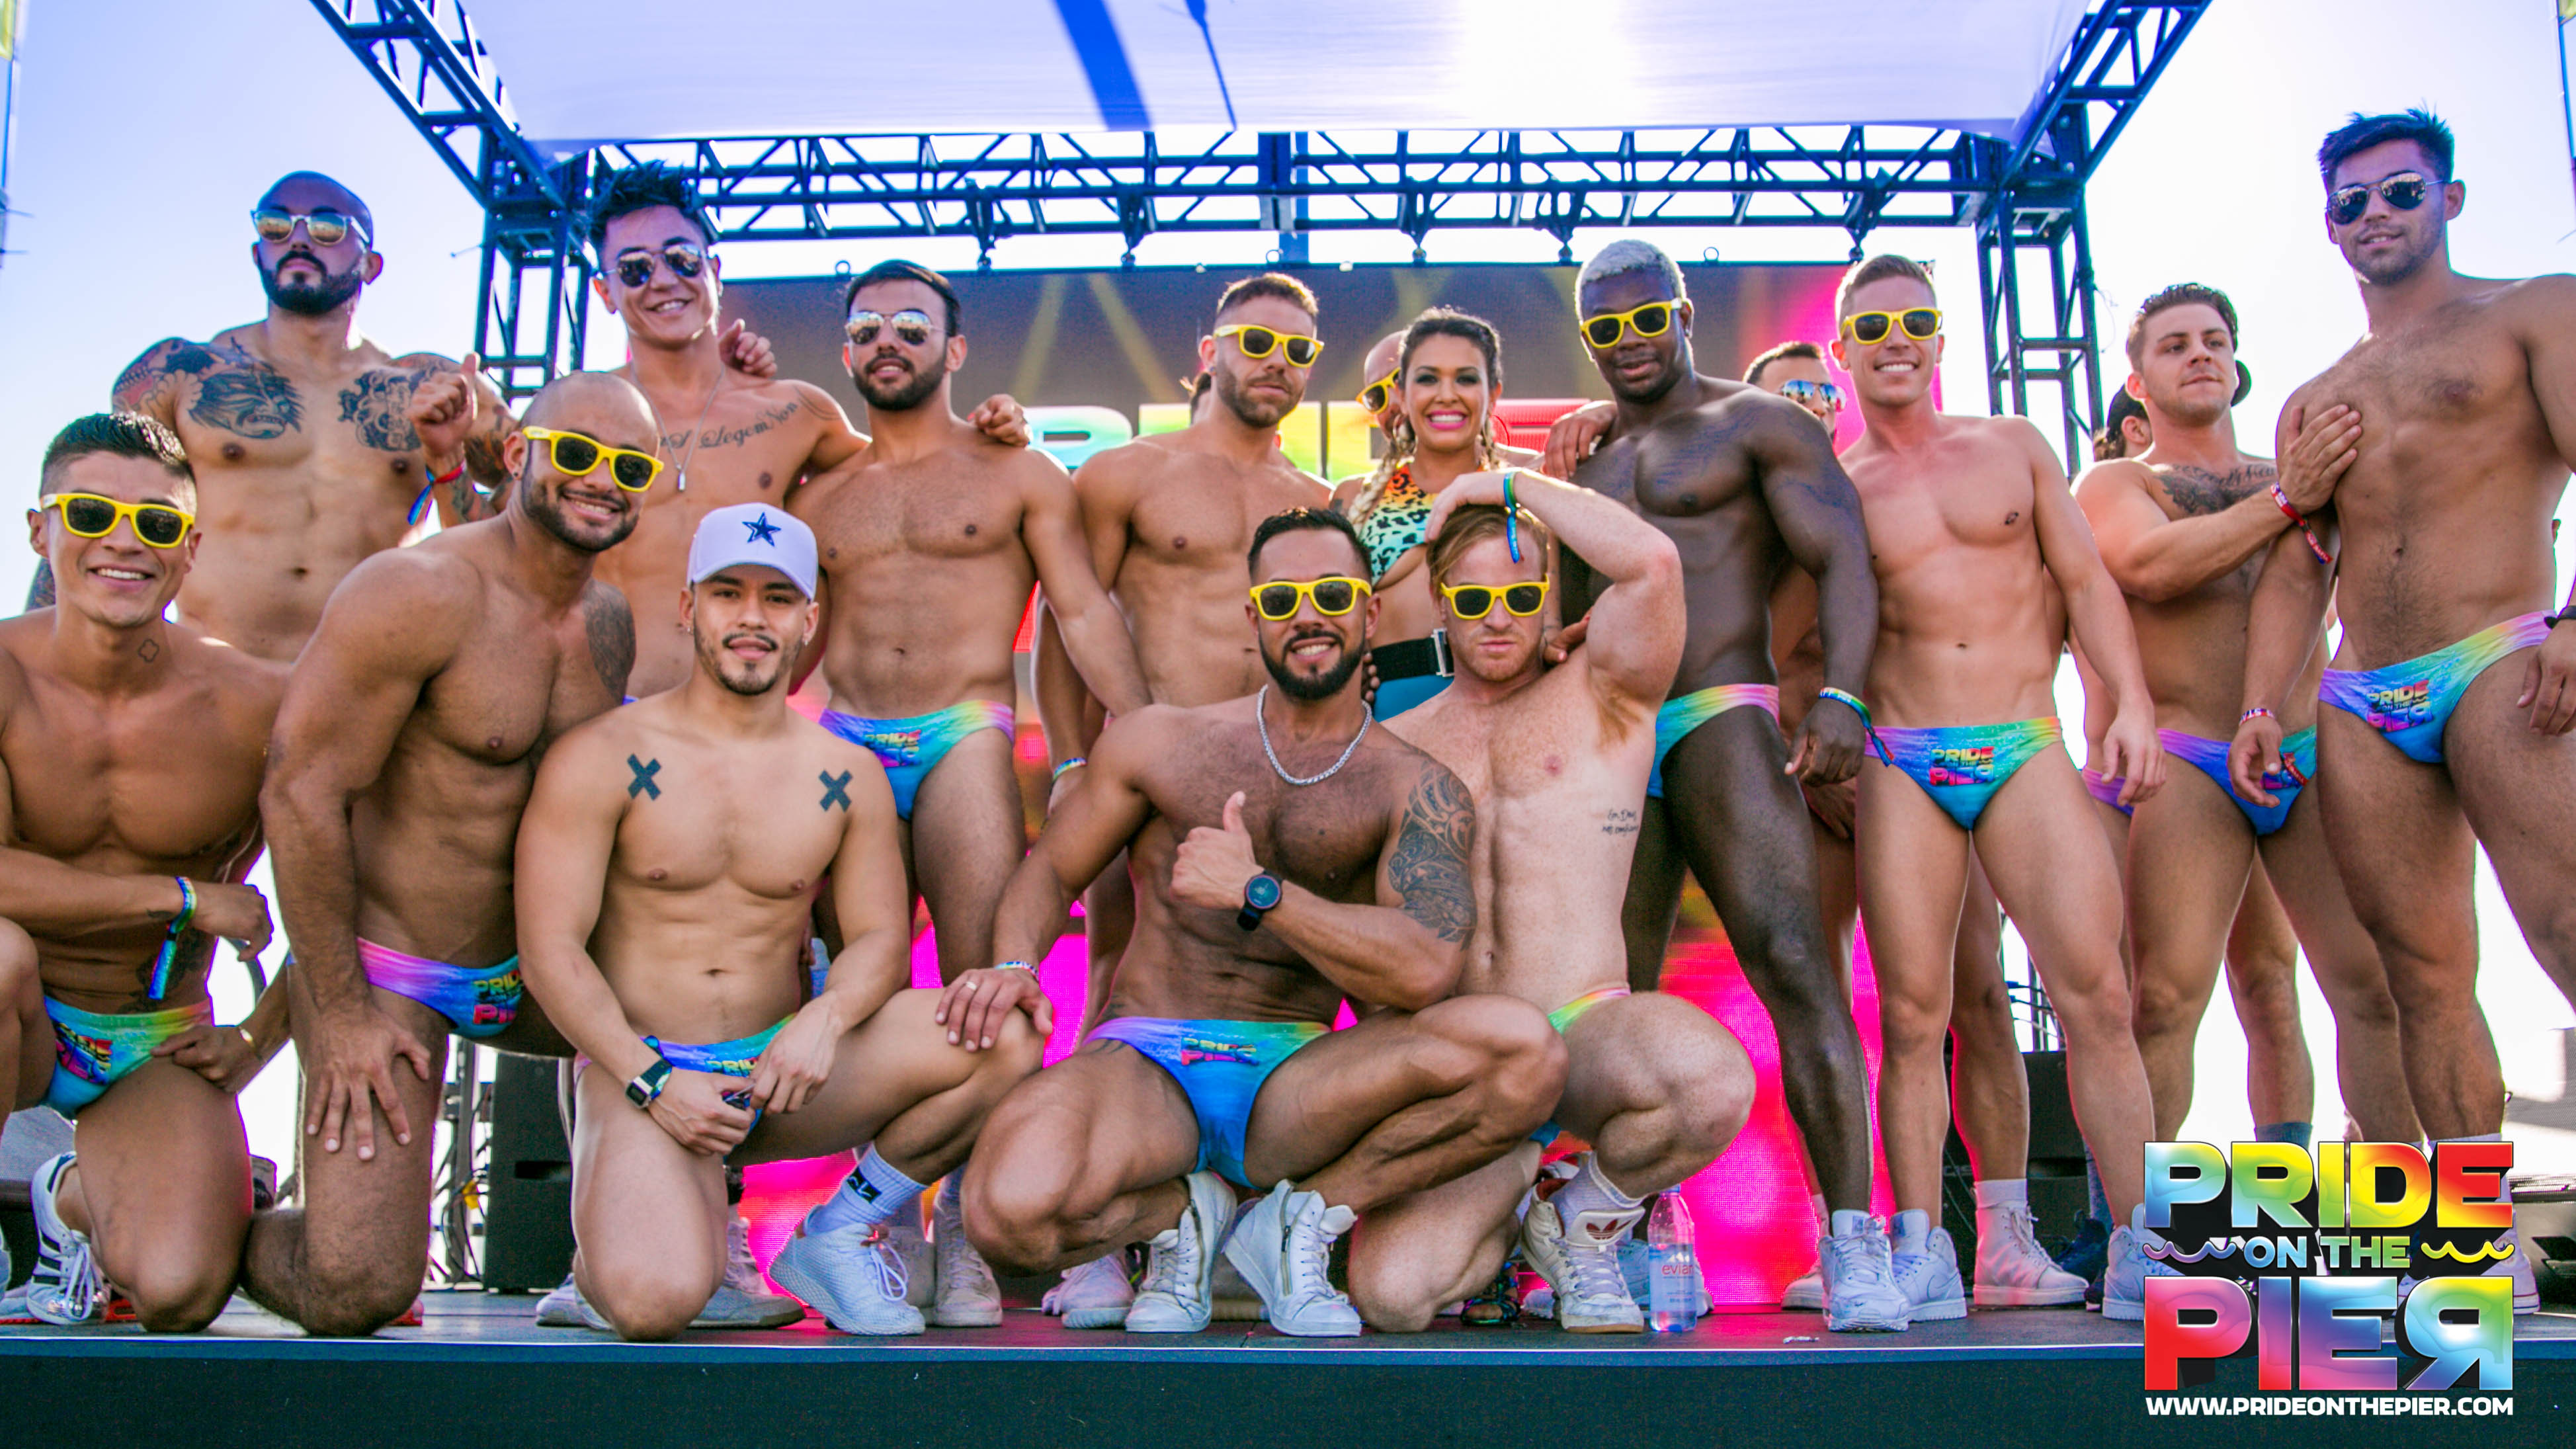 Buy Tickets to SAN DIEGO PRIDE ON THE PIER in San Diego on ...